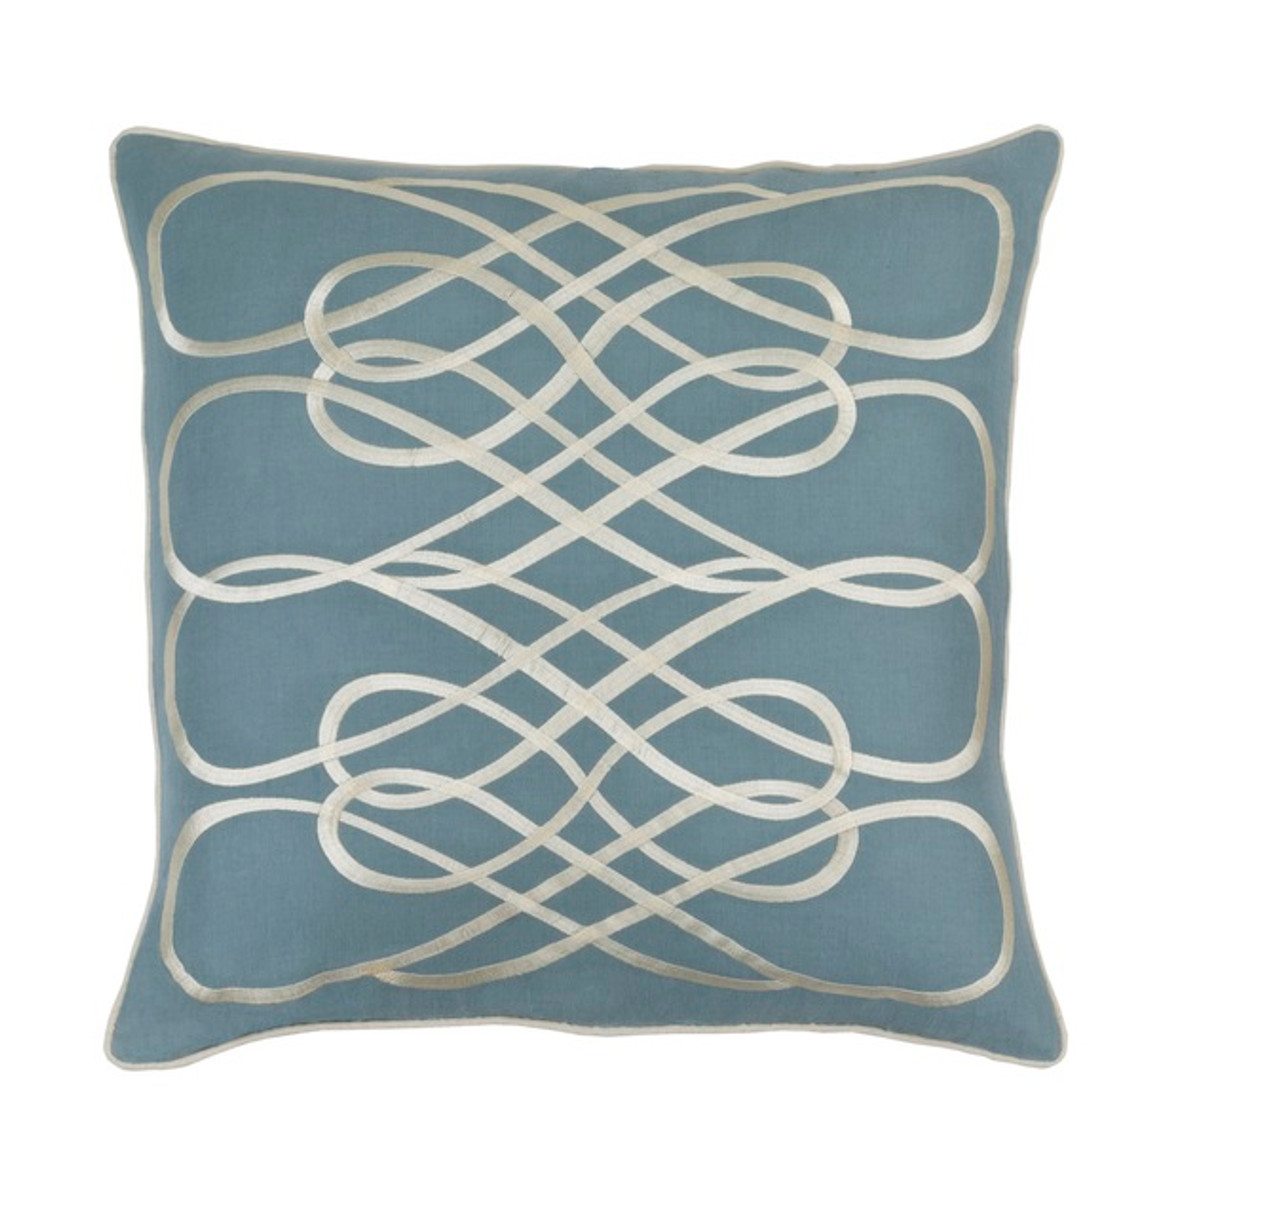 Blue Down Throw Pillows : 20? Heather Blue & Cashmere White Woven Decorative Throw Pillow - Down Filler Christmas Central